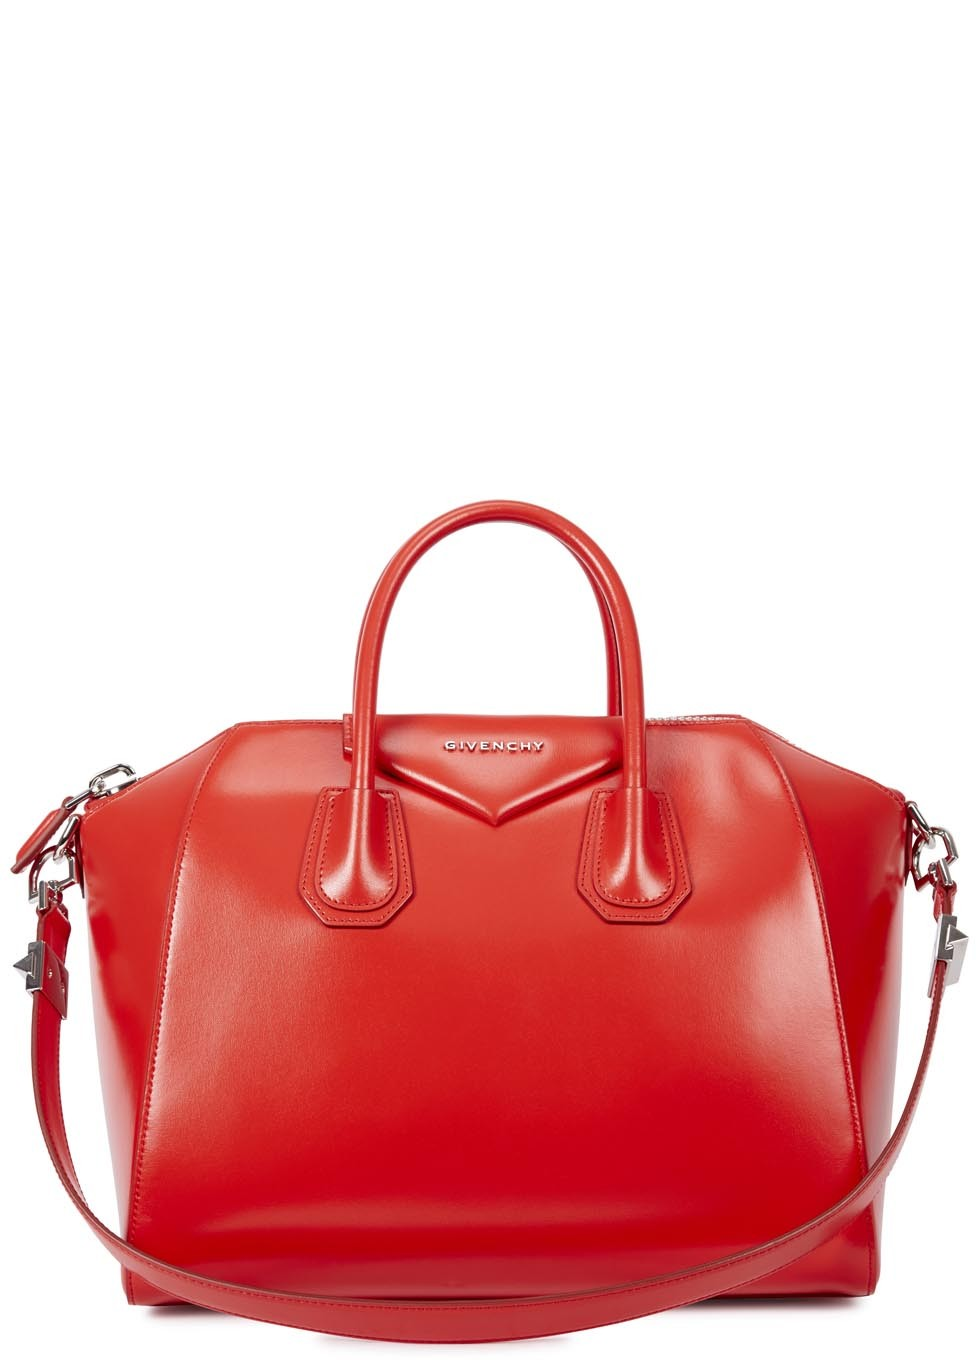 Givenchy Antigona red leather tote